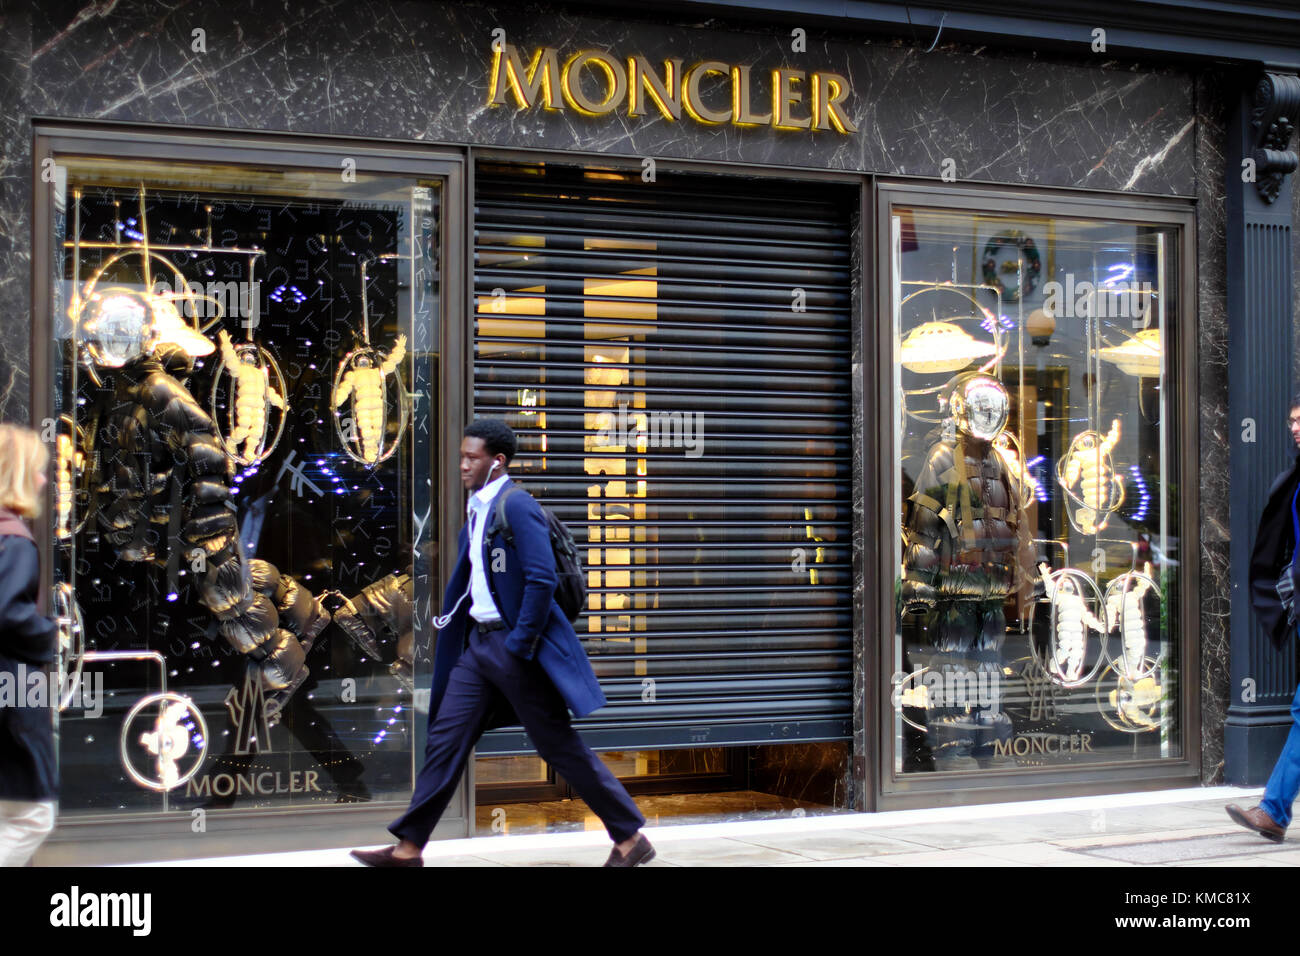 677cc31c3 Moncler store in London